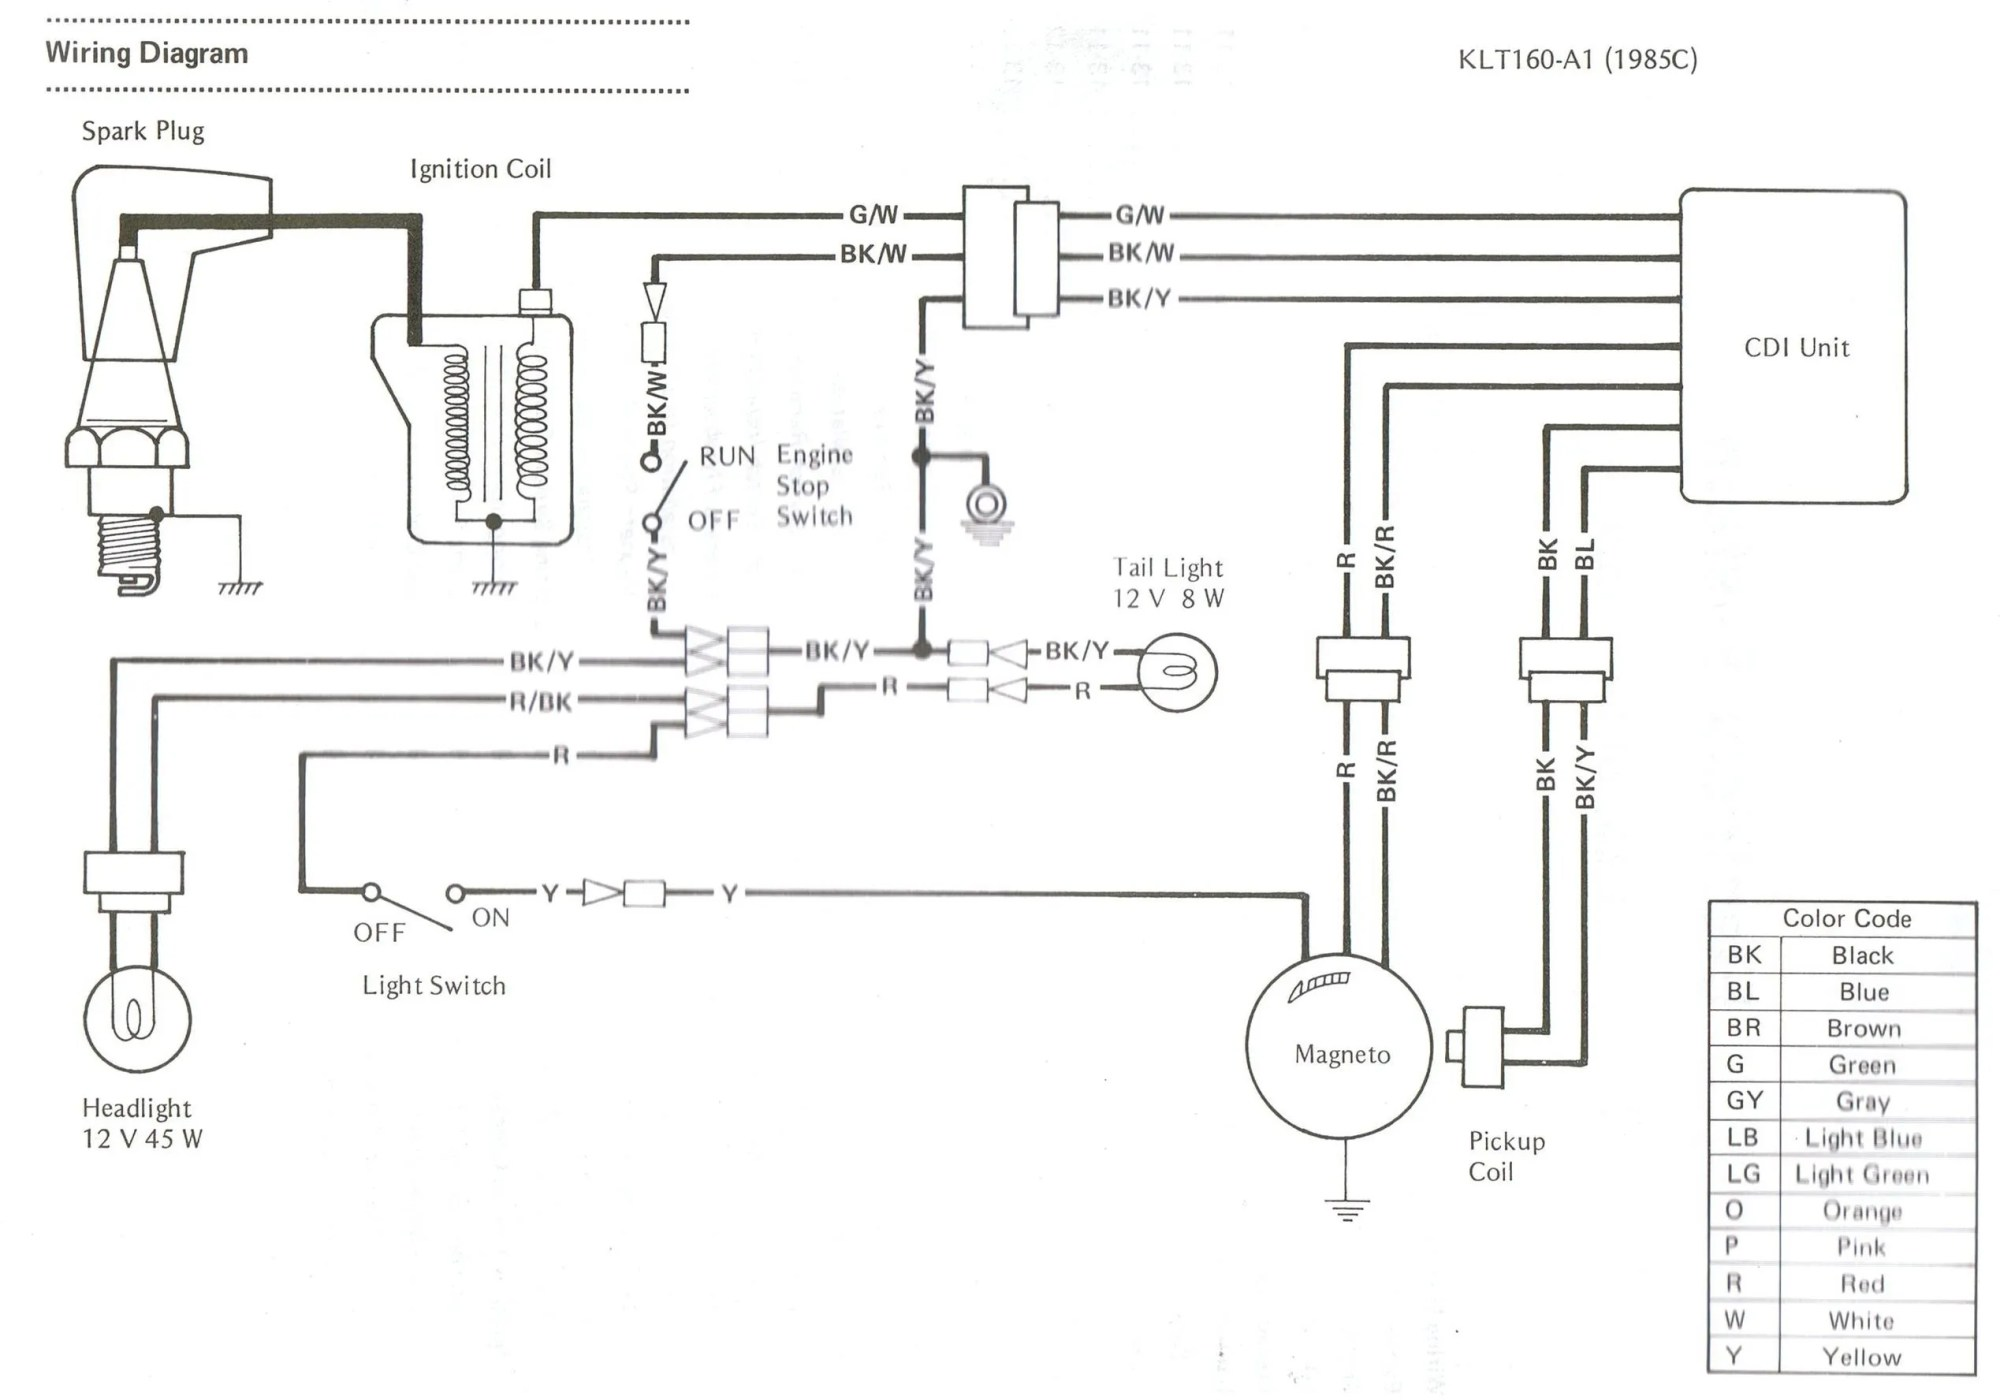 hight resolution of polaris predator wiring diagram wiring diagram 2006 polaris predator 90 wiring diagram